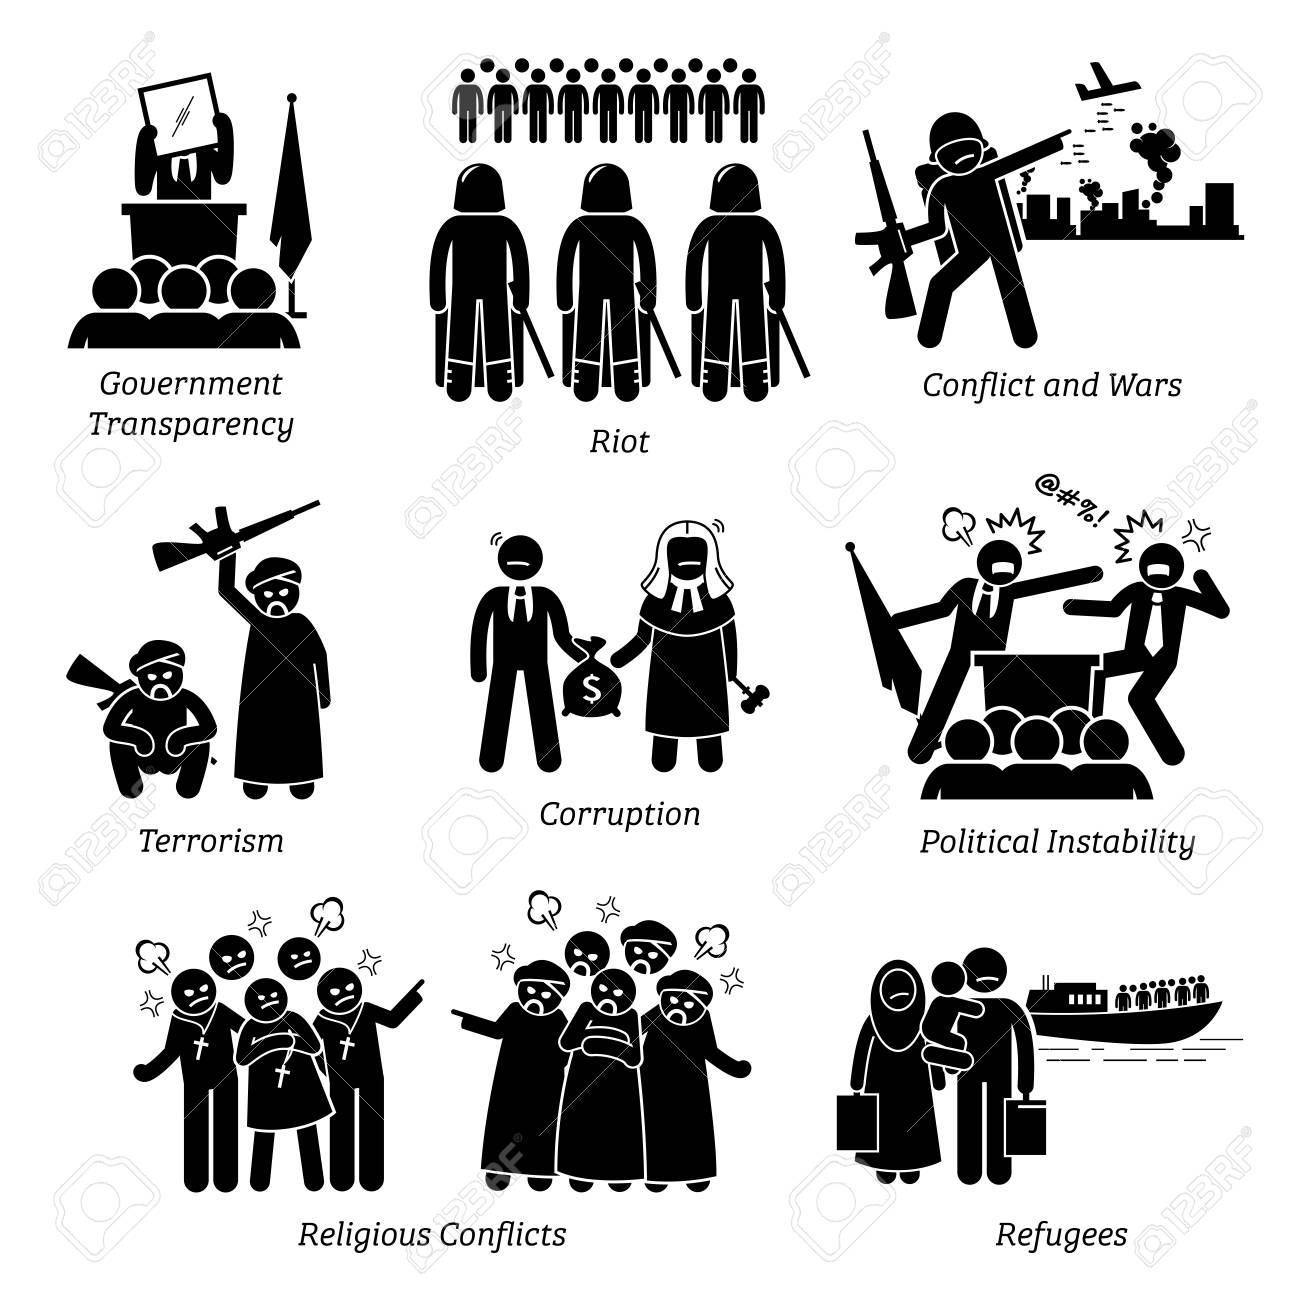 Social Issues World Problems Pictogram Icons. Illustrations depicts government transparency, riot, civil war, conflict, terrorism, corruption, political instability, religious conflicts, and refugee. - 89056999